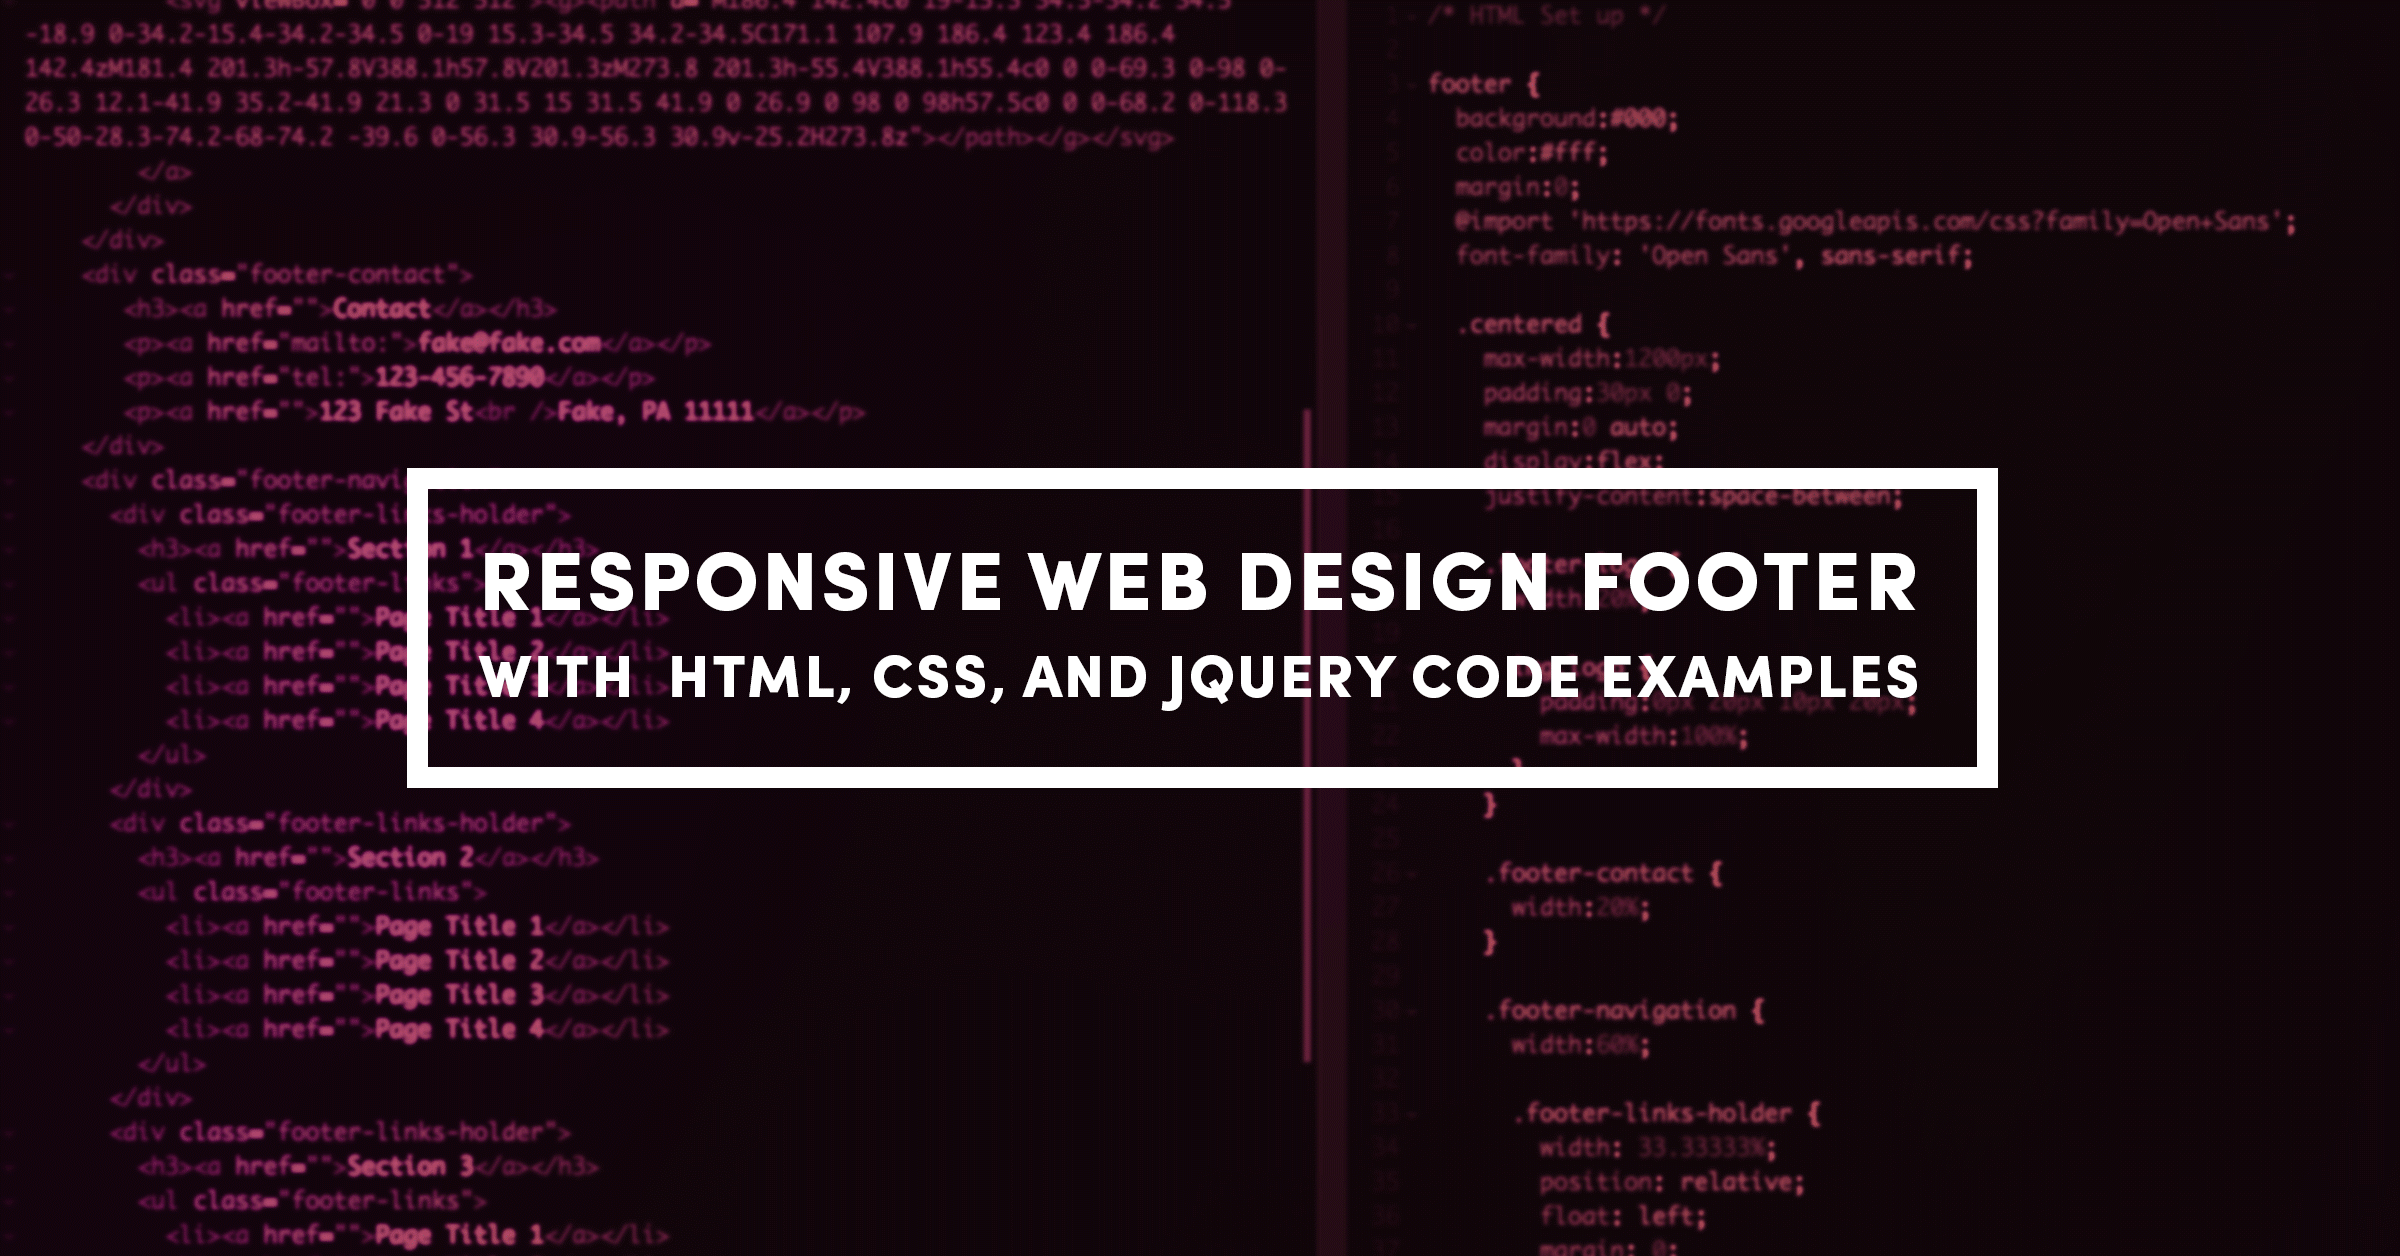 Responsive Web Design Footer with HTML, CSS, and JQuery Code